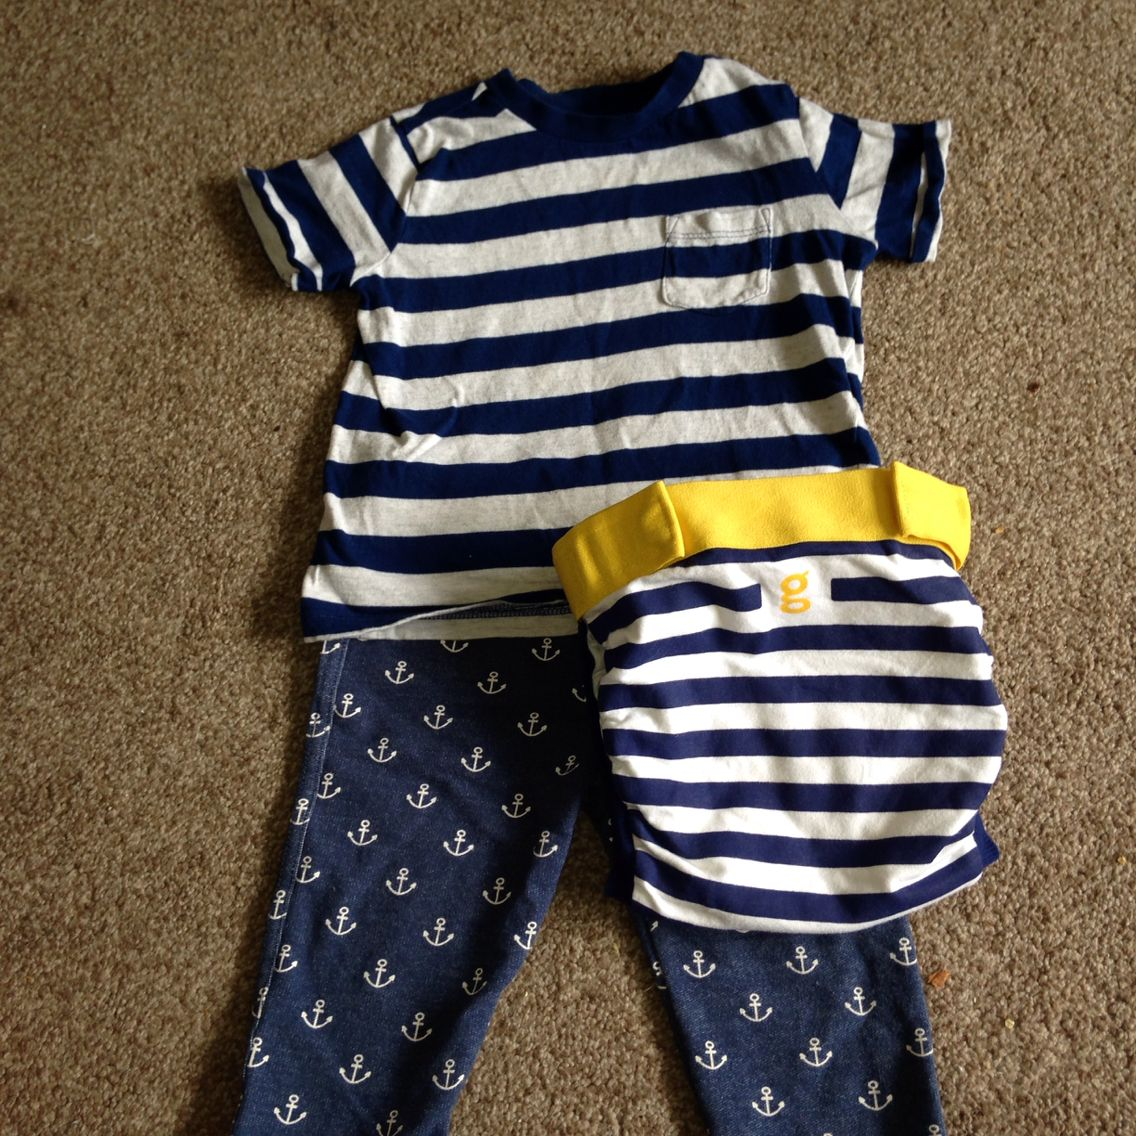 One of Logan's gone sailing outfit